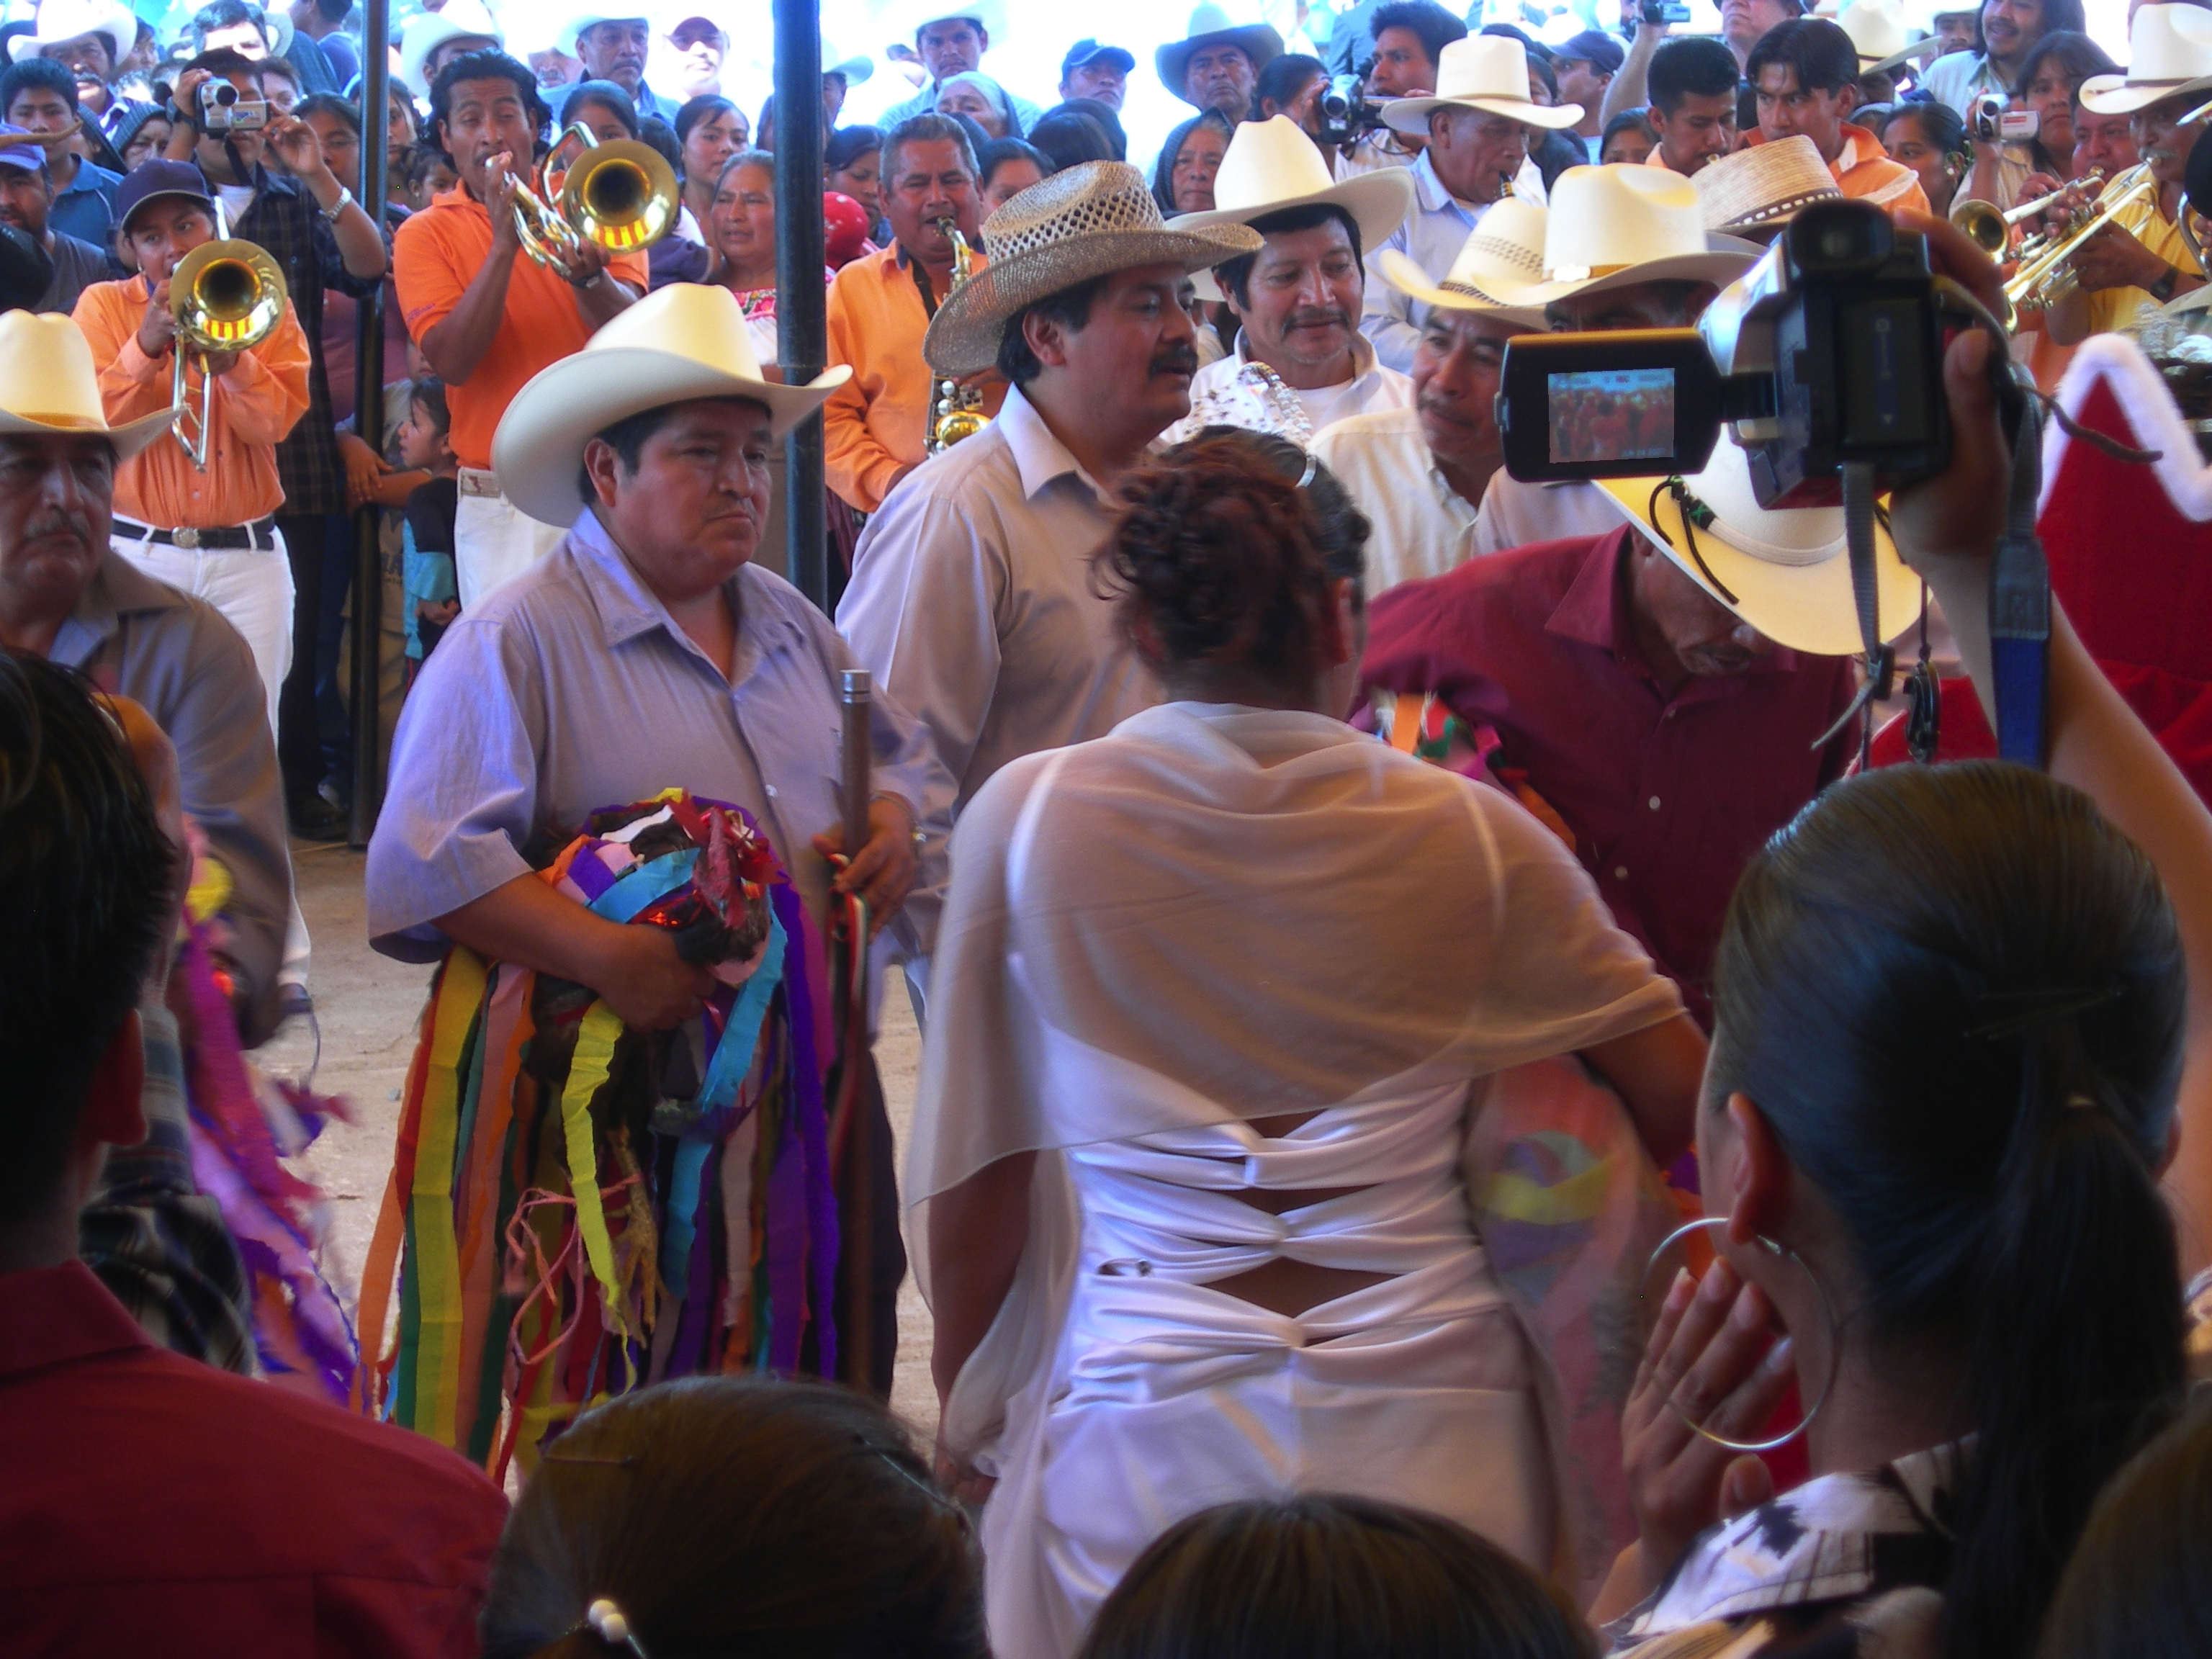 FIGURE 2. Celebrations honoring Saint John the Baptist in San Juan Mixtepec, the Mixteca Baja. May 2007. Photo by Byron Hamann.